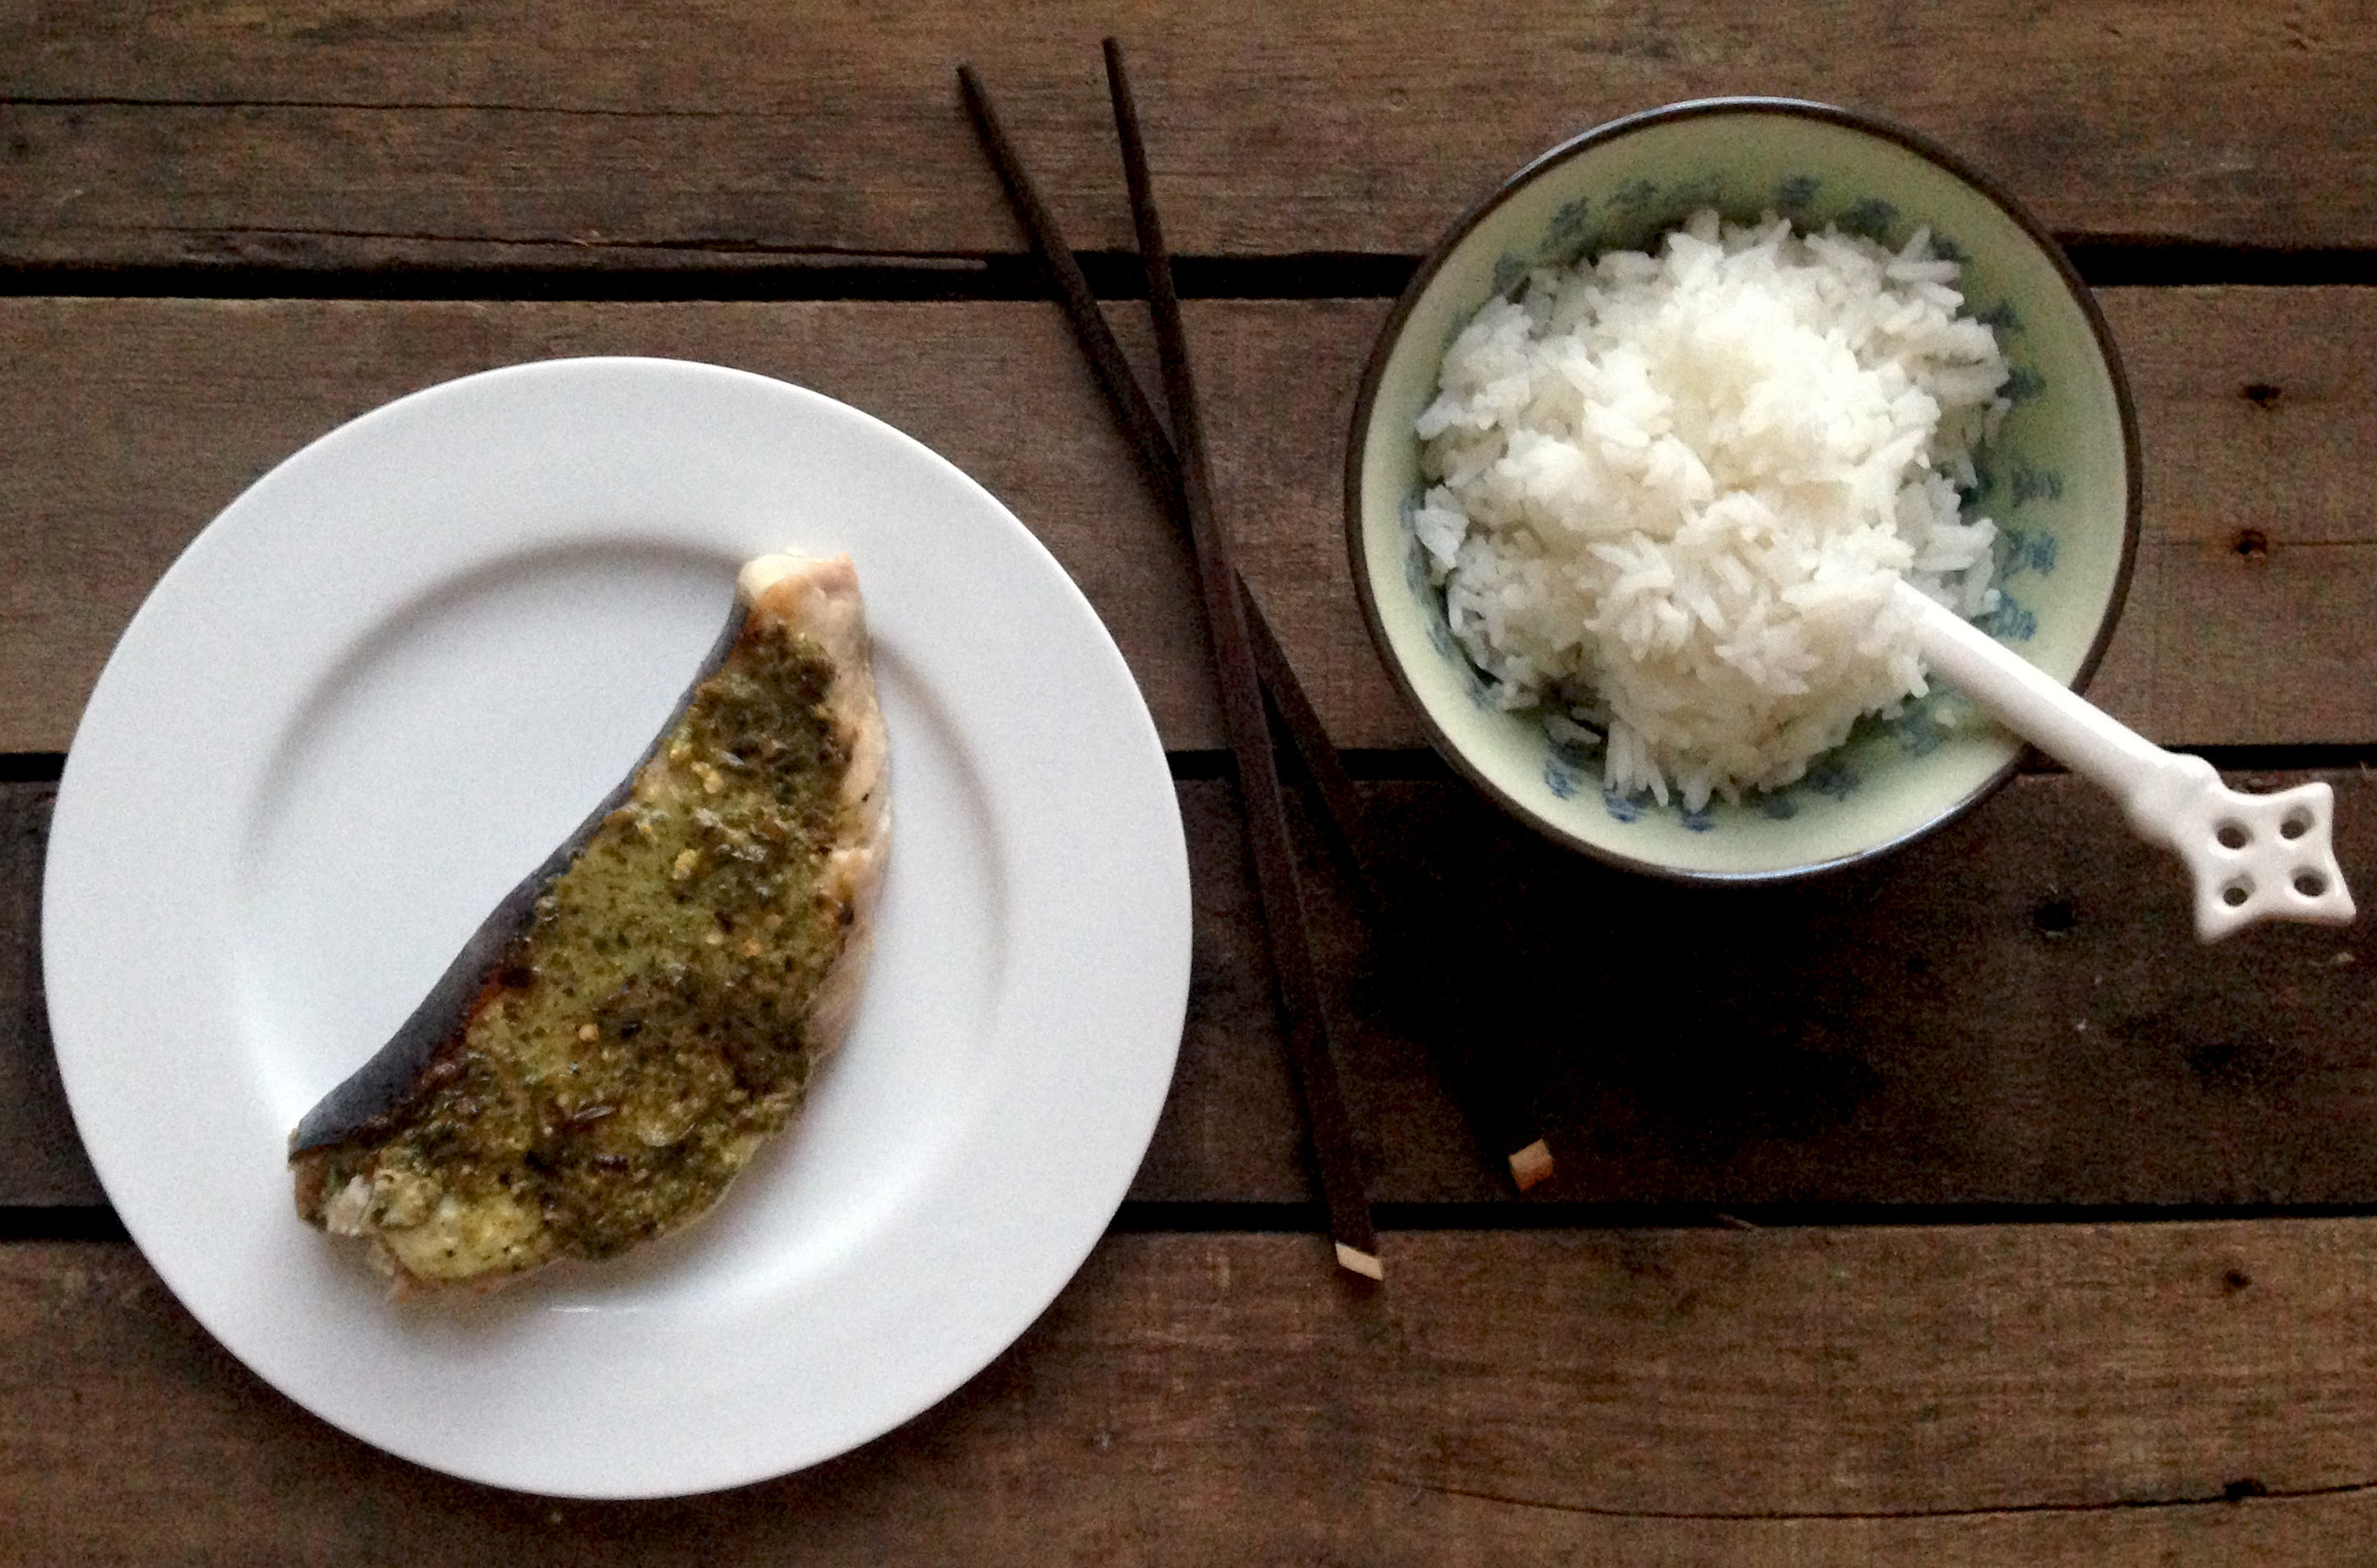 Grilled Swordfish Steak with a Pesto, Chili and Lemon Crust